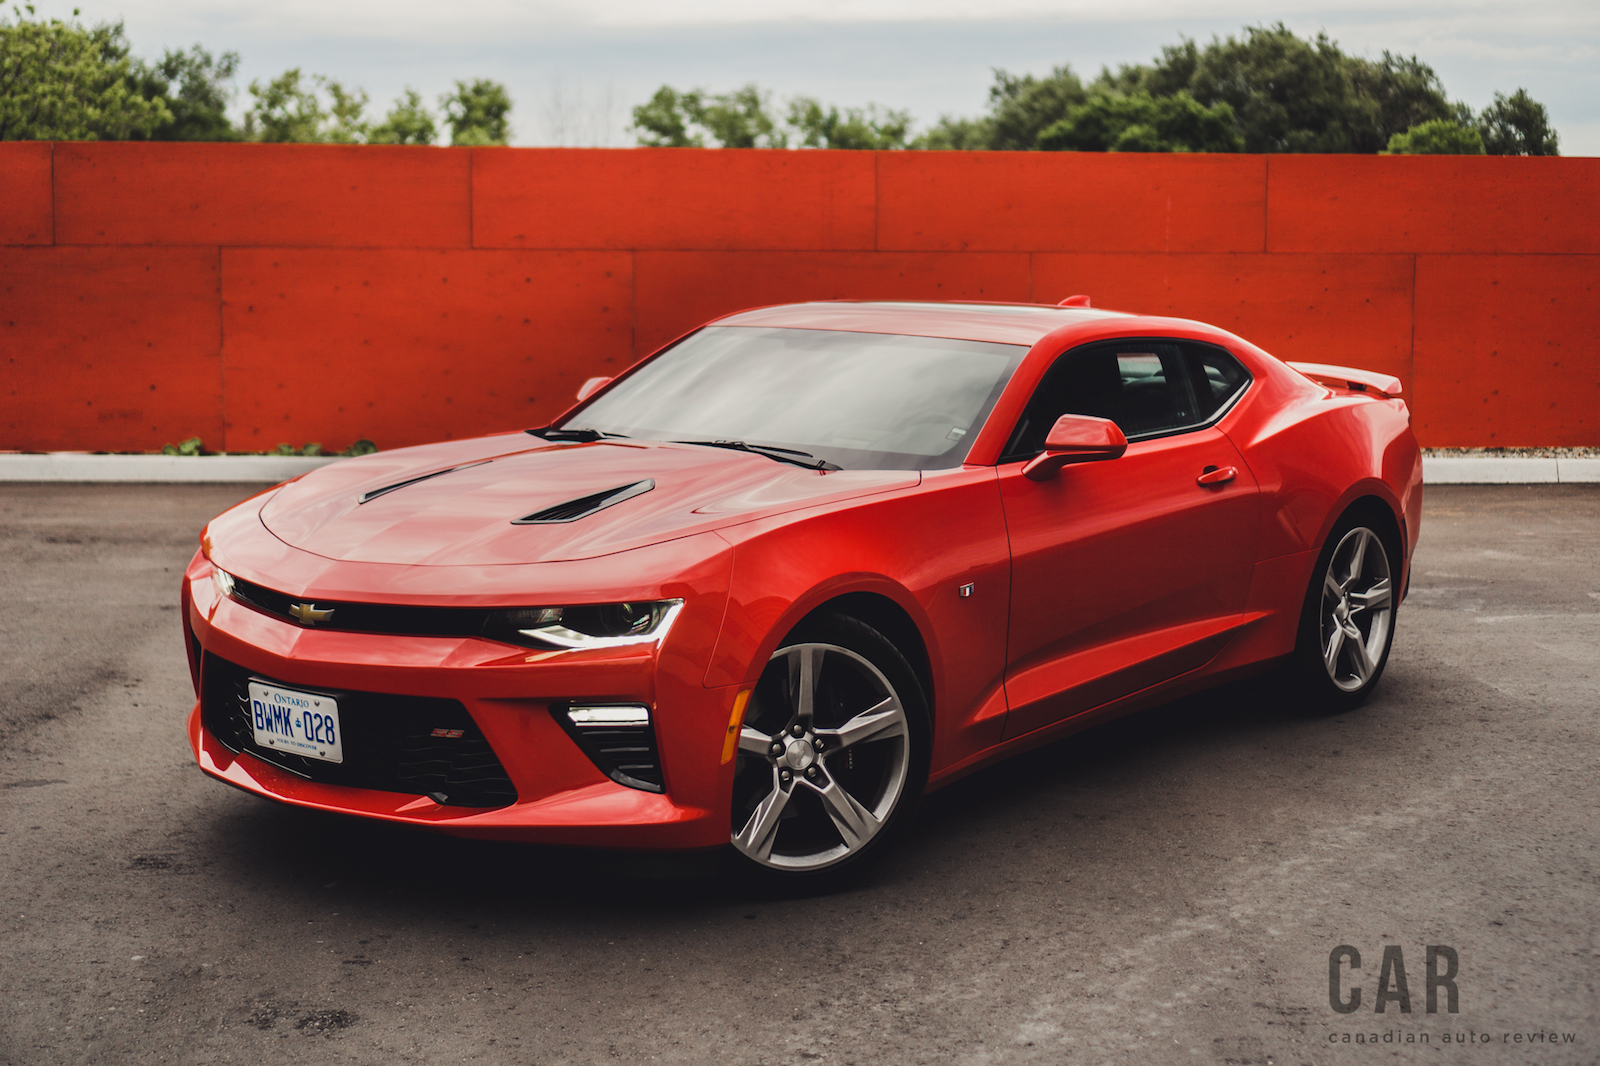 review 2016 chevrolet camaro ss canadian auto review. Black Bedroom Furniture Sets. Home Design Ideas